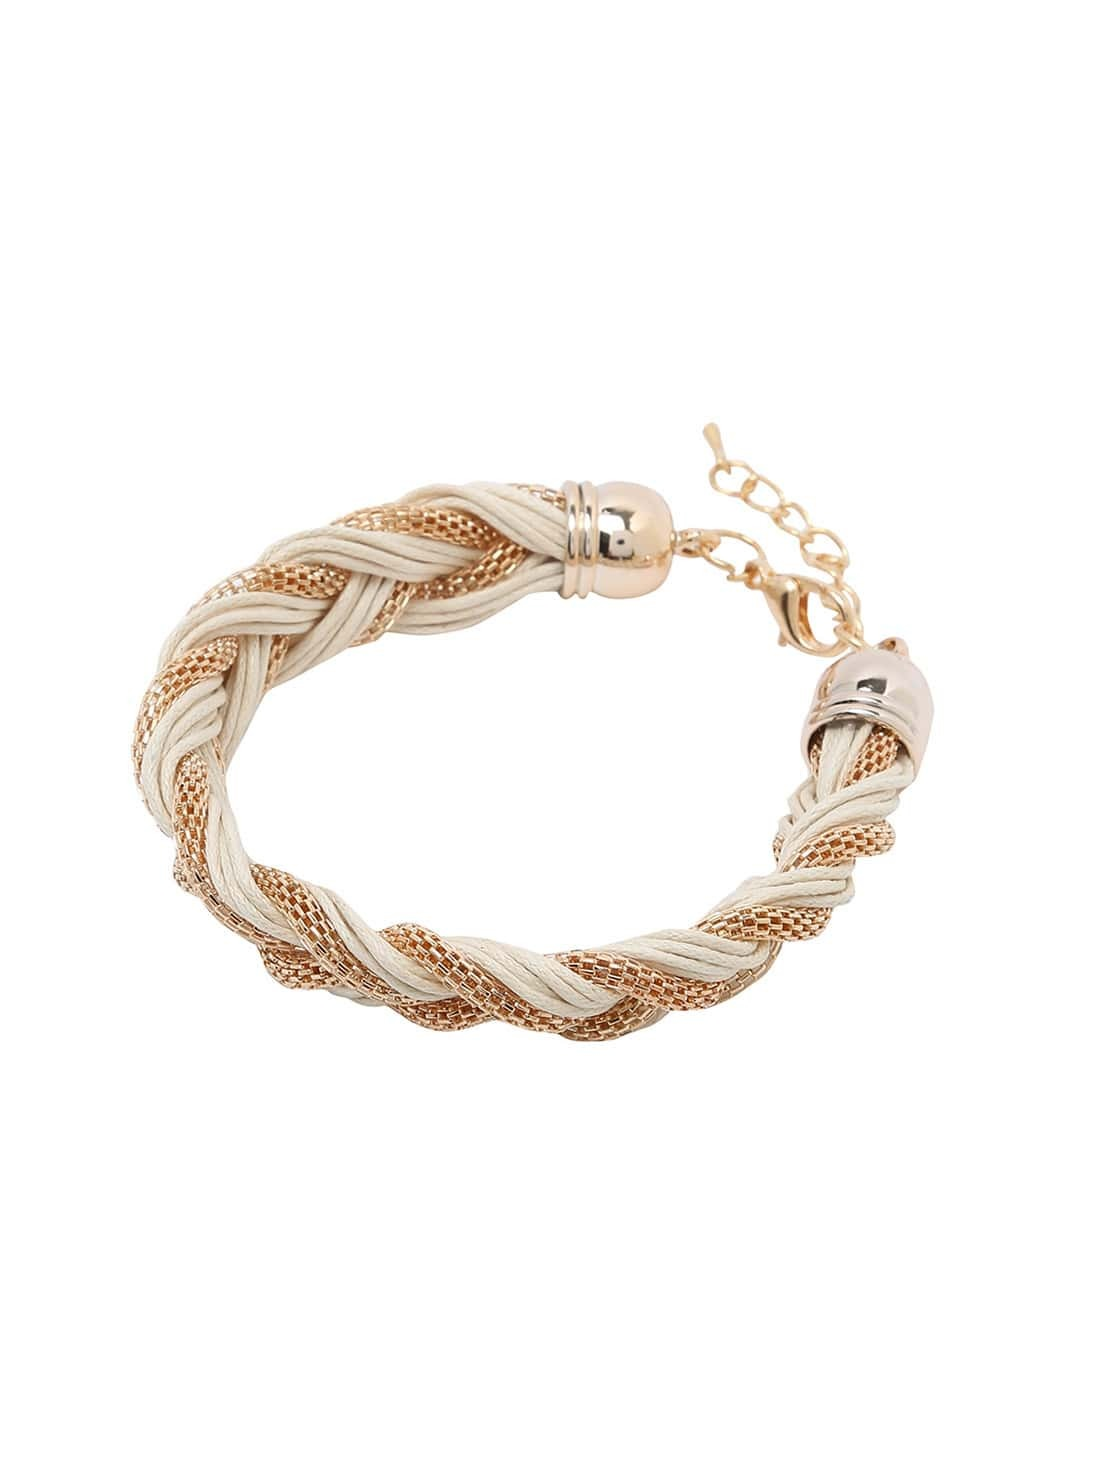 braided string bracelets - photo #10